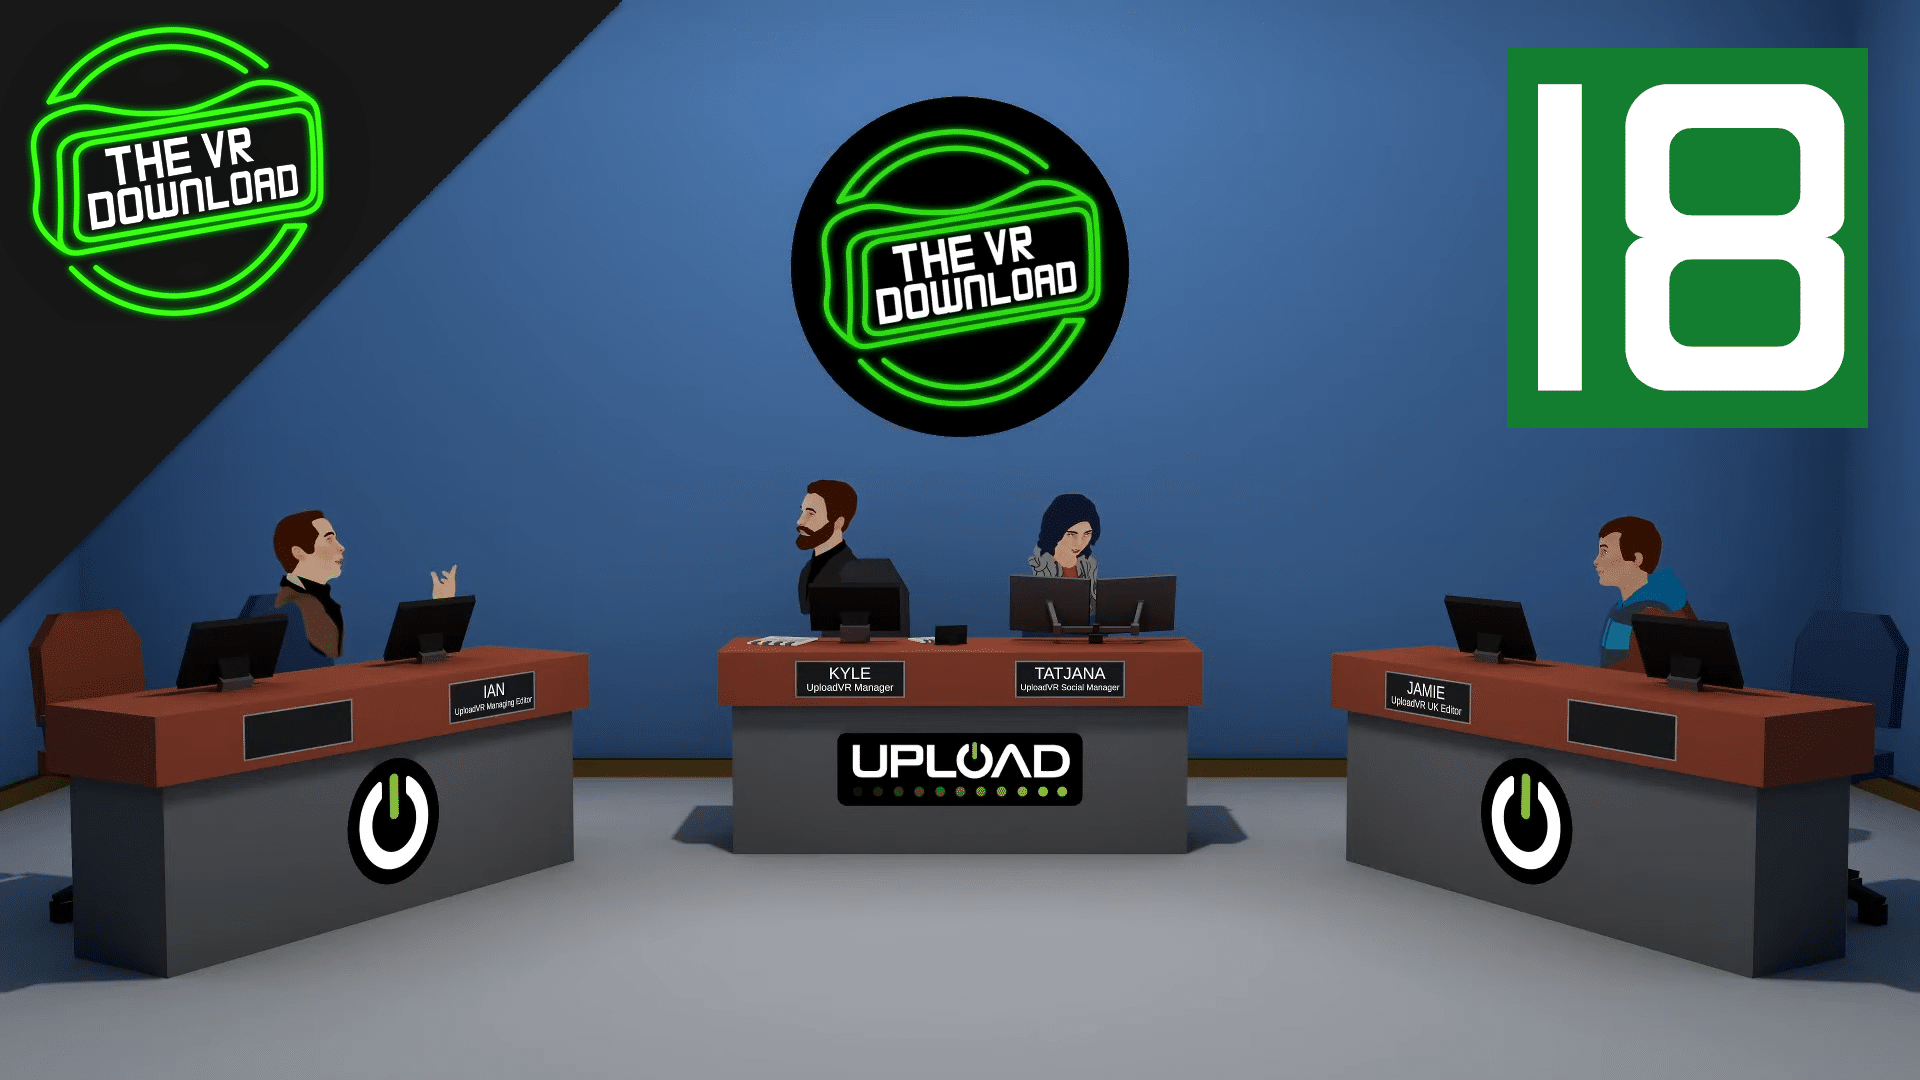 The VR Download EP18